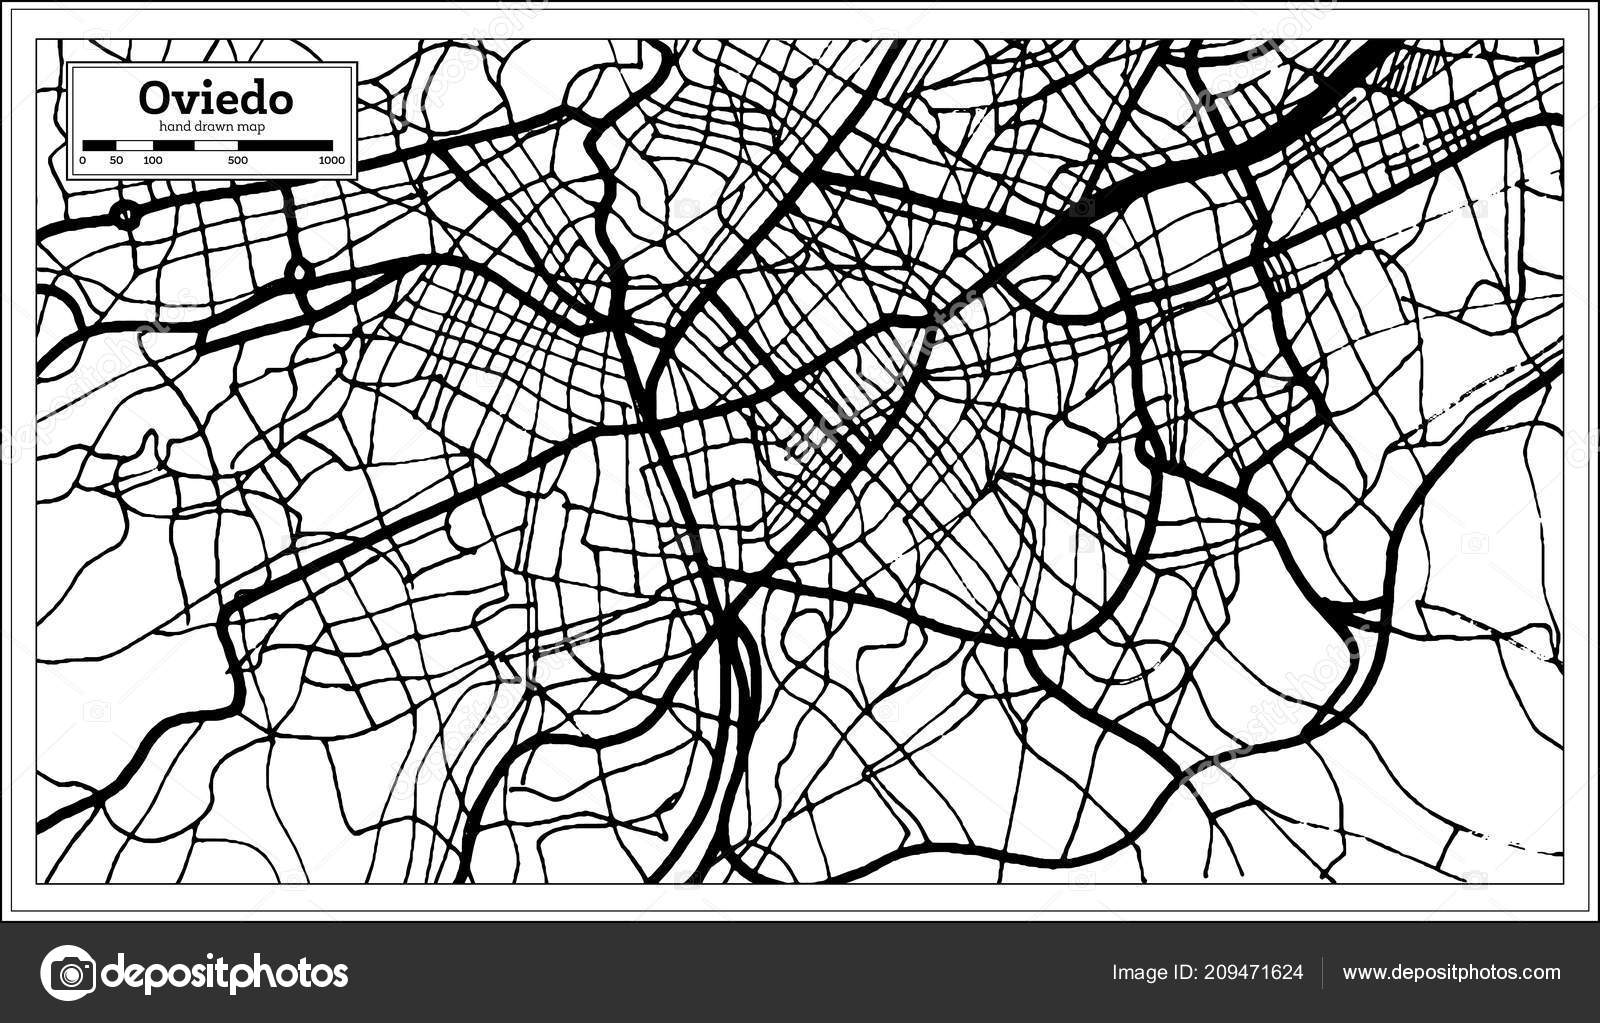 Oviedo Spain City Map Retro Style Outline Map Vector Illustration